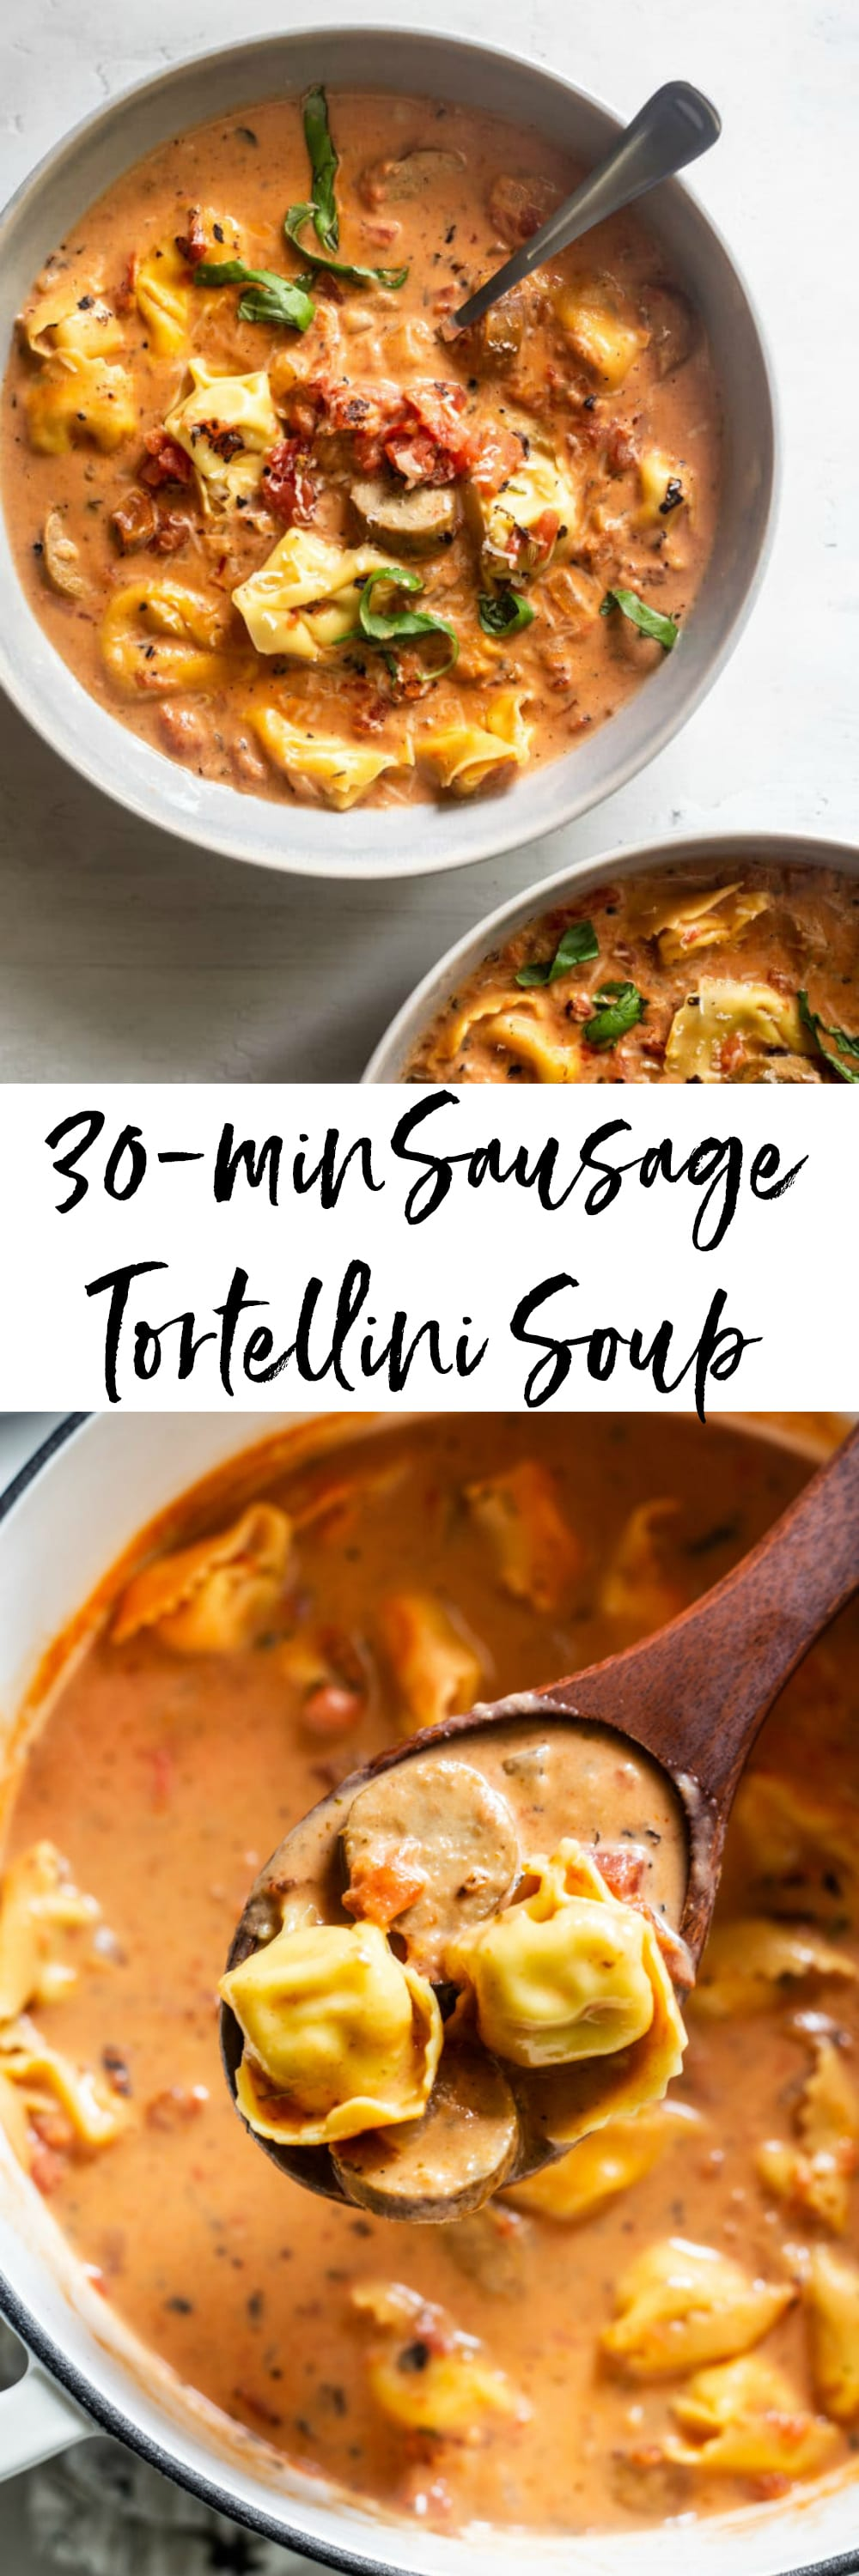 This Sausage Tortellini Soup comes together quickly with a rich and creamy tomato base, Italian chicken sausage and cheese tortellini.